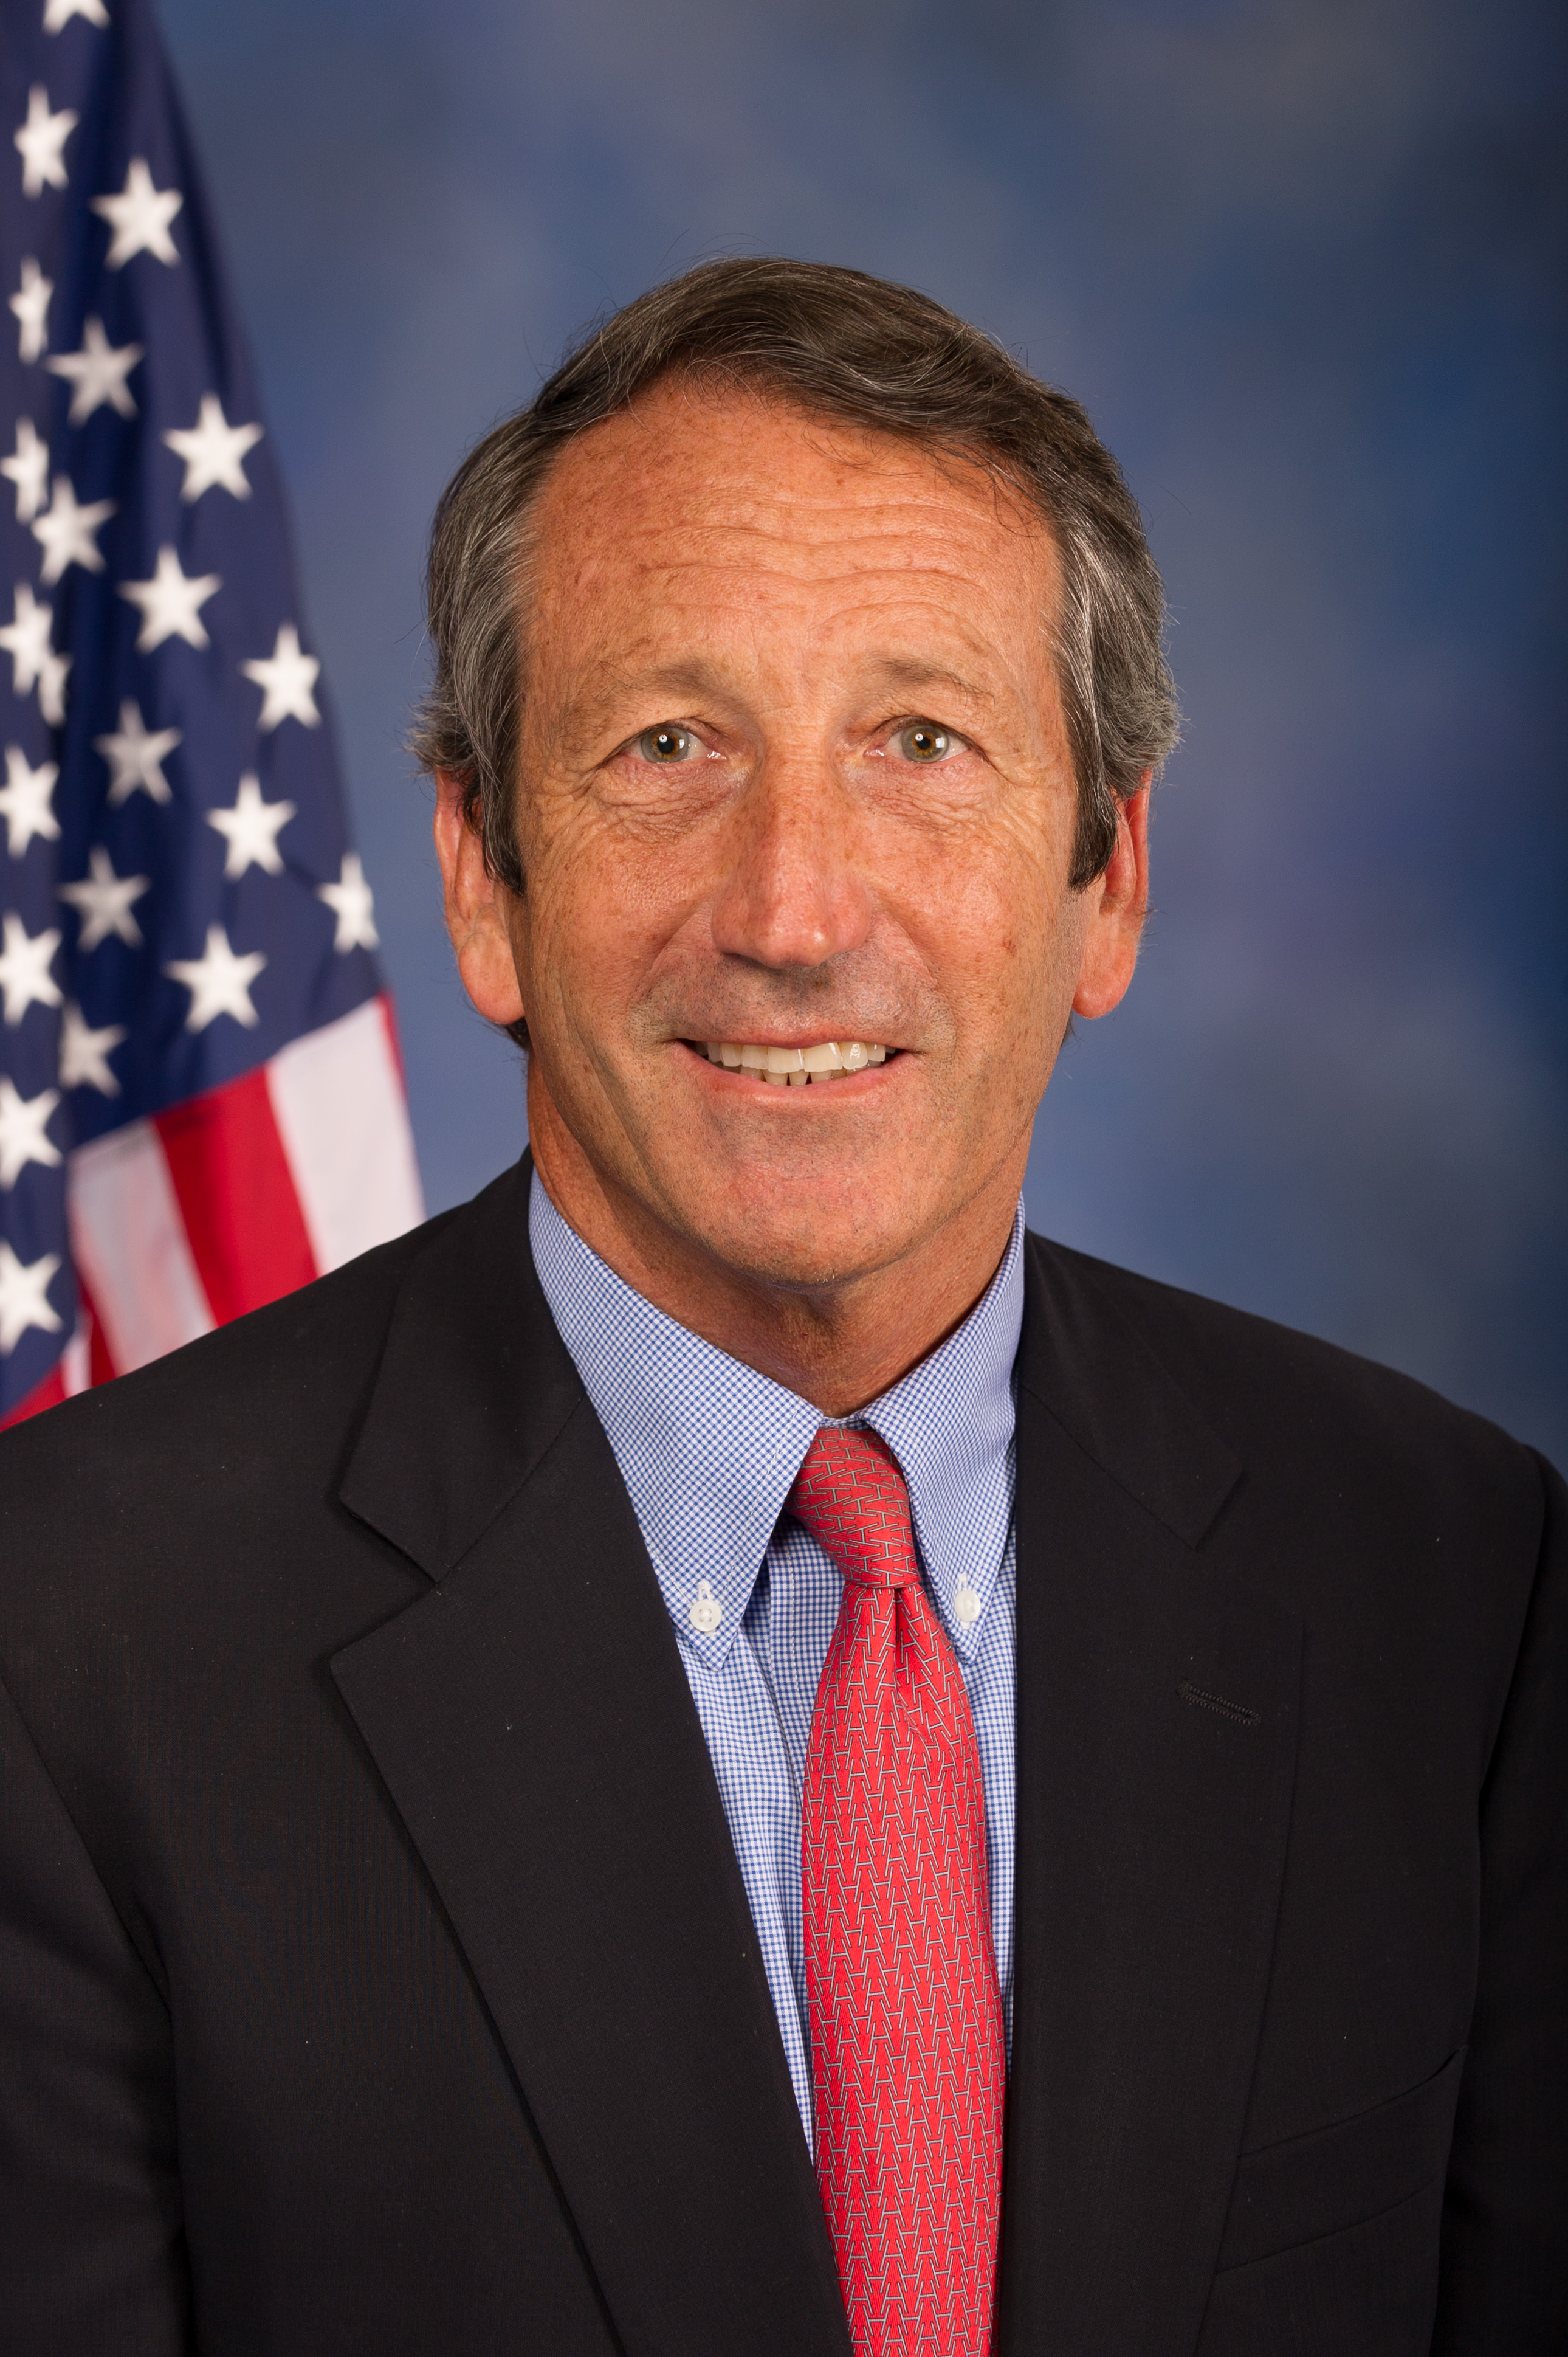 https://upload.wikimedia.org/wikipedia/commons/5/50/Mark_Sanford,_Official_Portrait,_113th_Congress.jpg